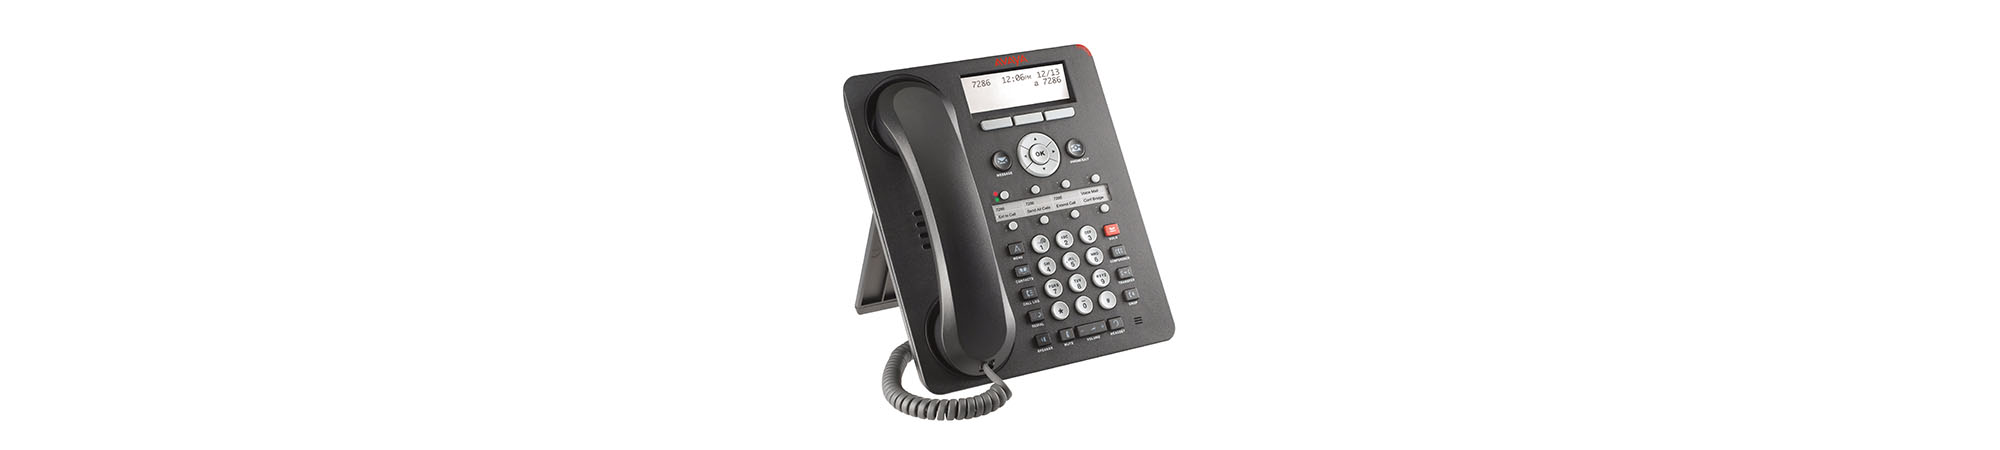 Avaya 1608 user guide